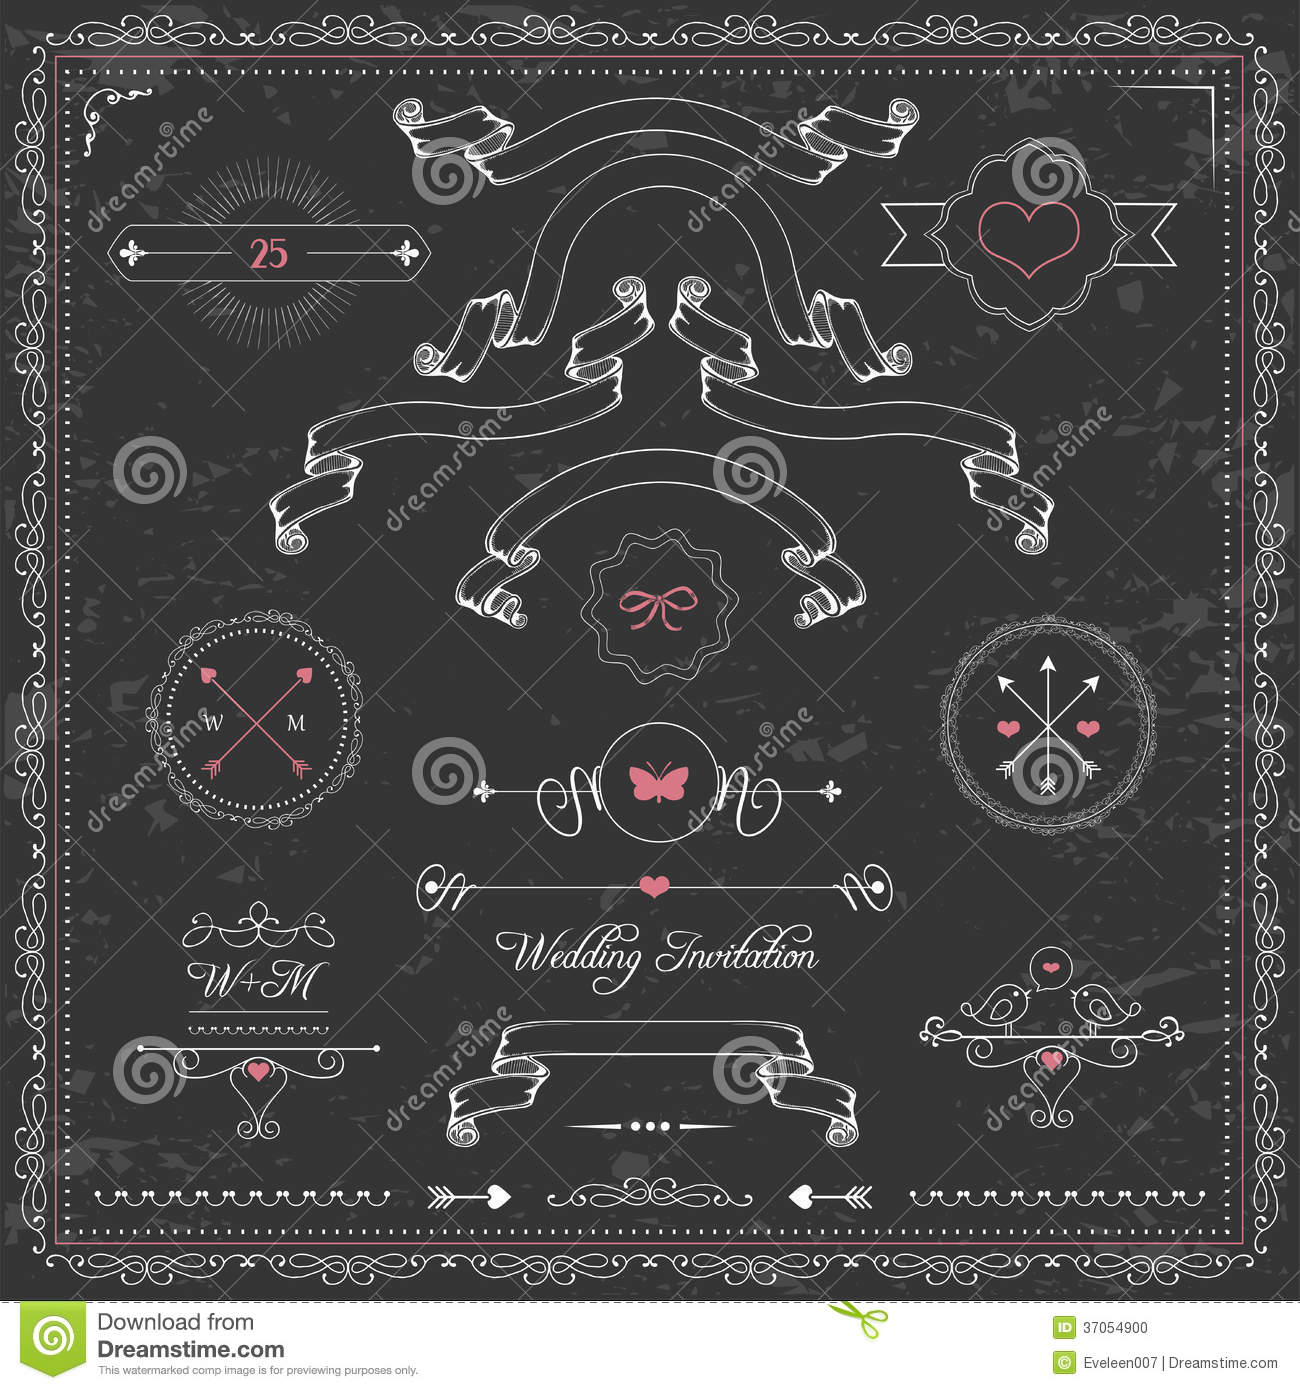 Design Elements Chalkboard Wedding Invitation Stock Vector